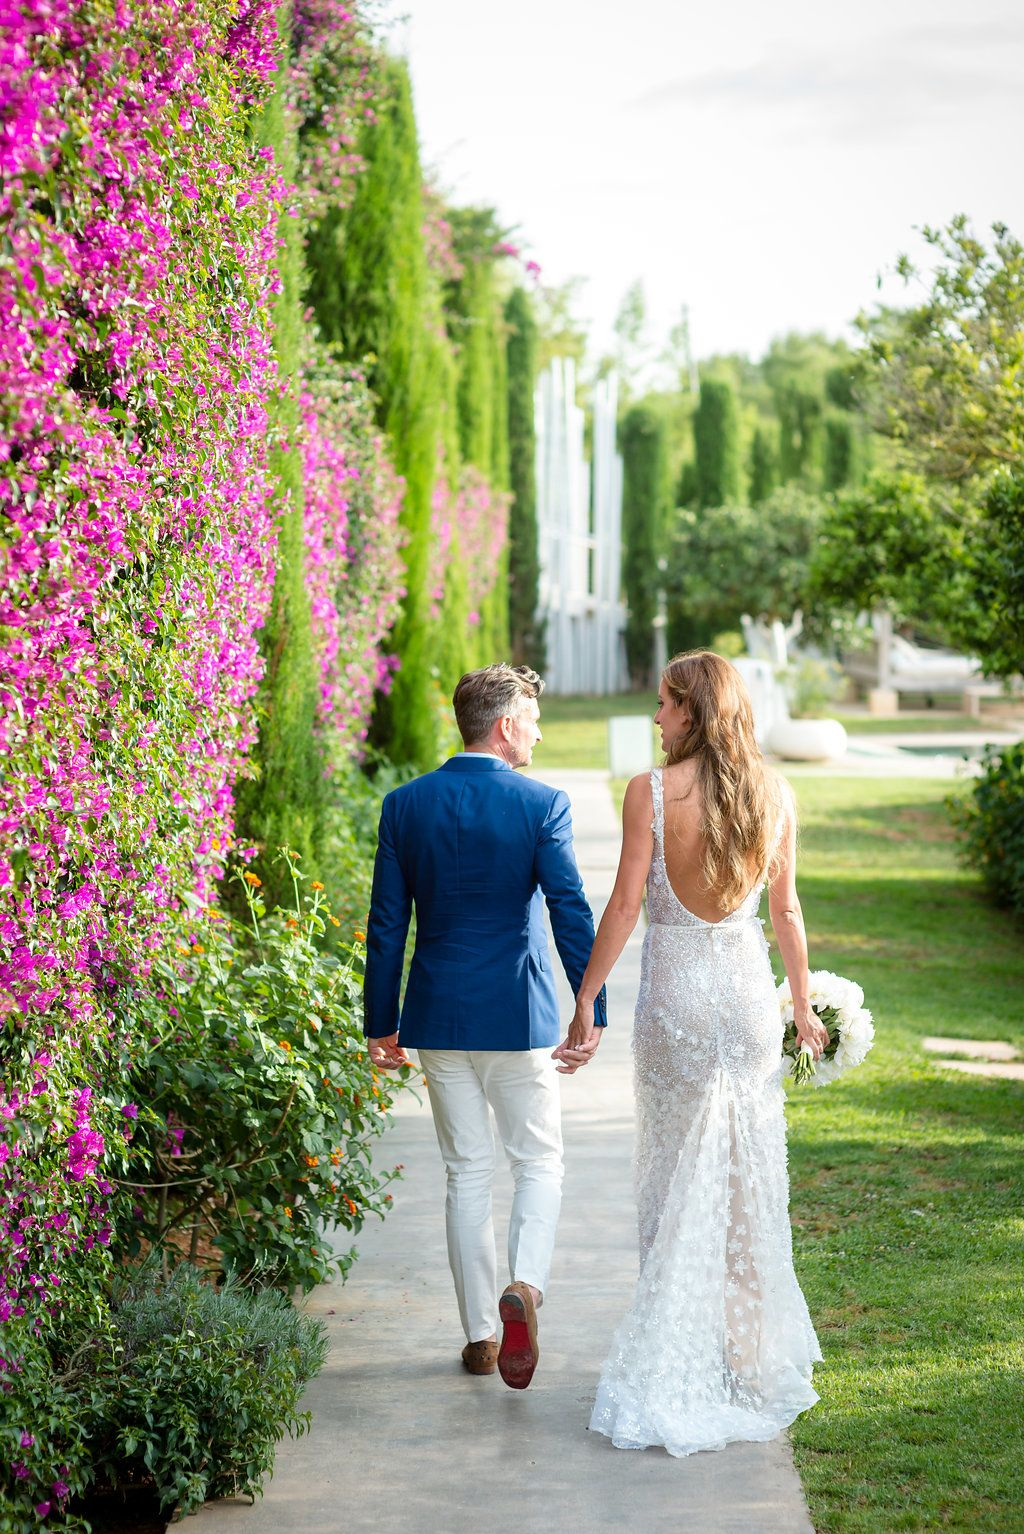 d32171b31a Kate & Dan's Luxe Ibiza Summer Destination Wedding - LEE PETRA GREBENAU  - Our Lee